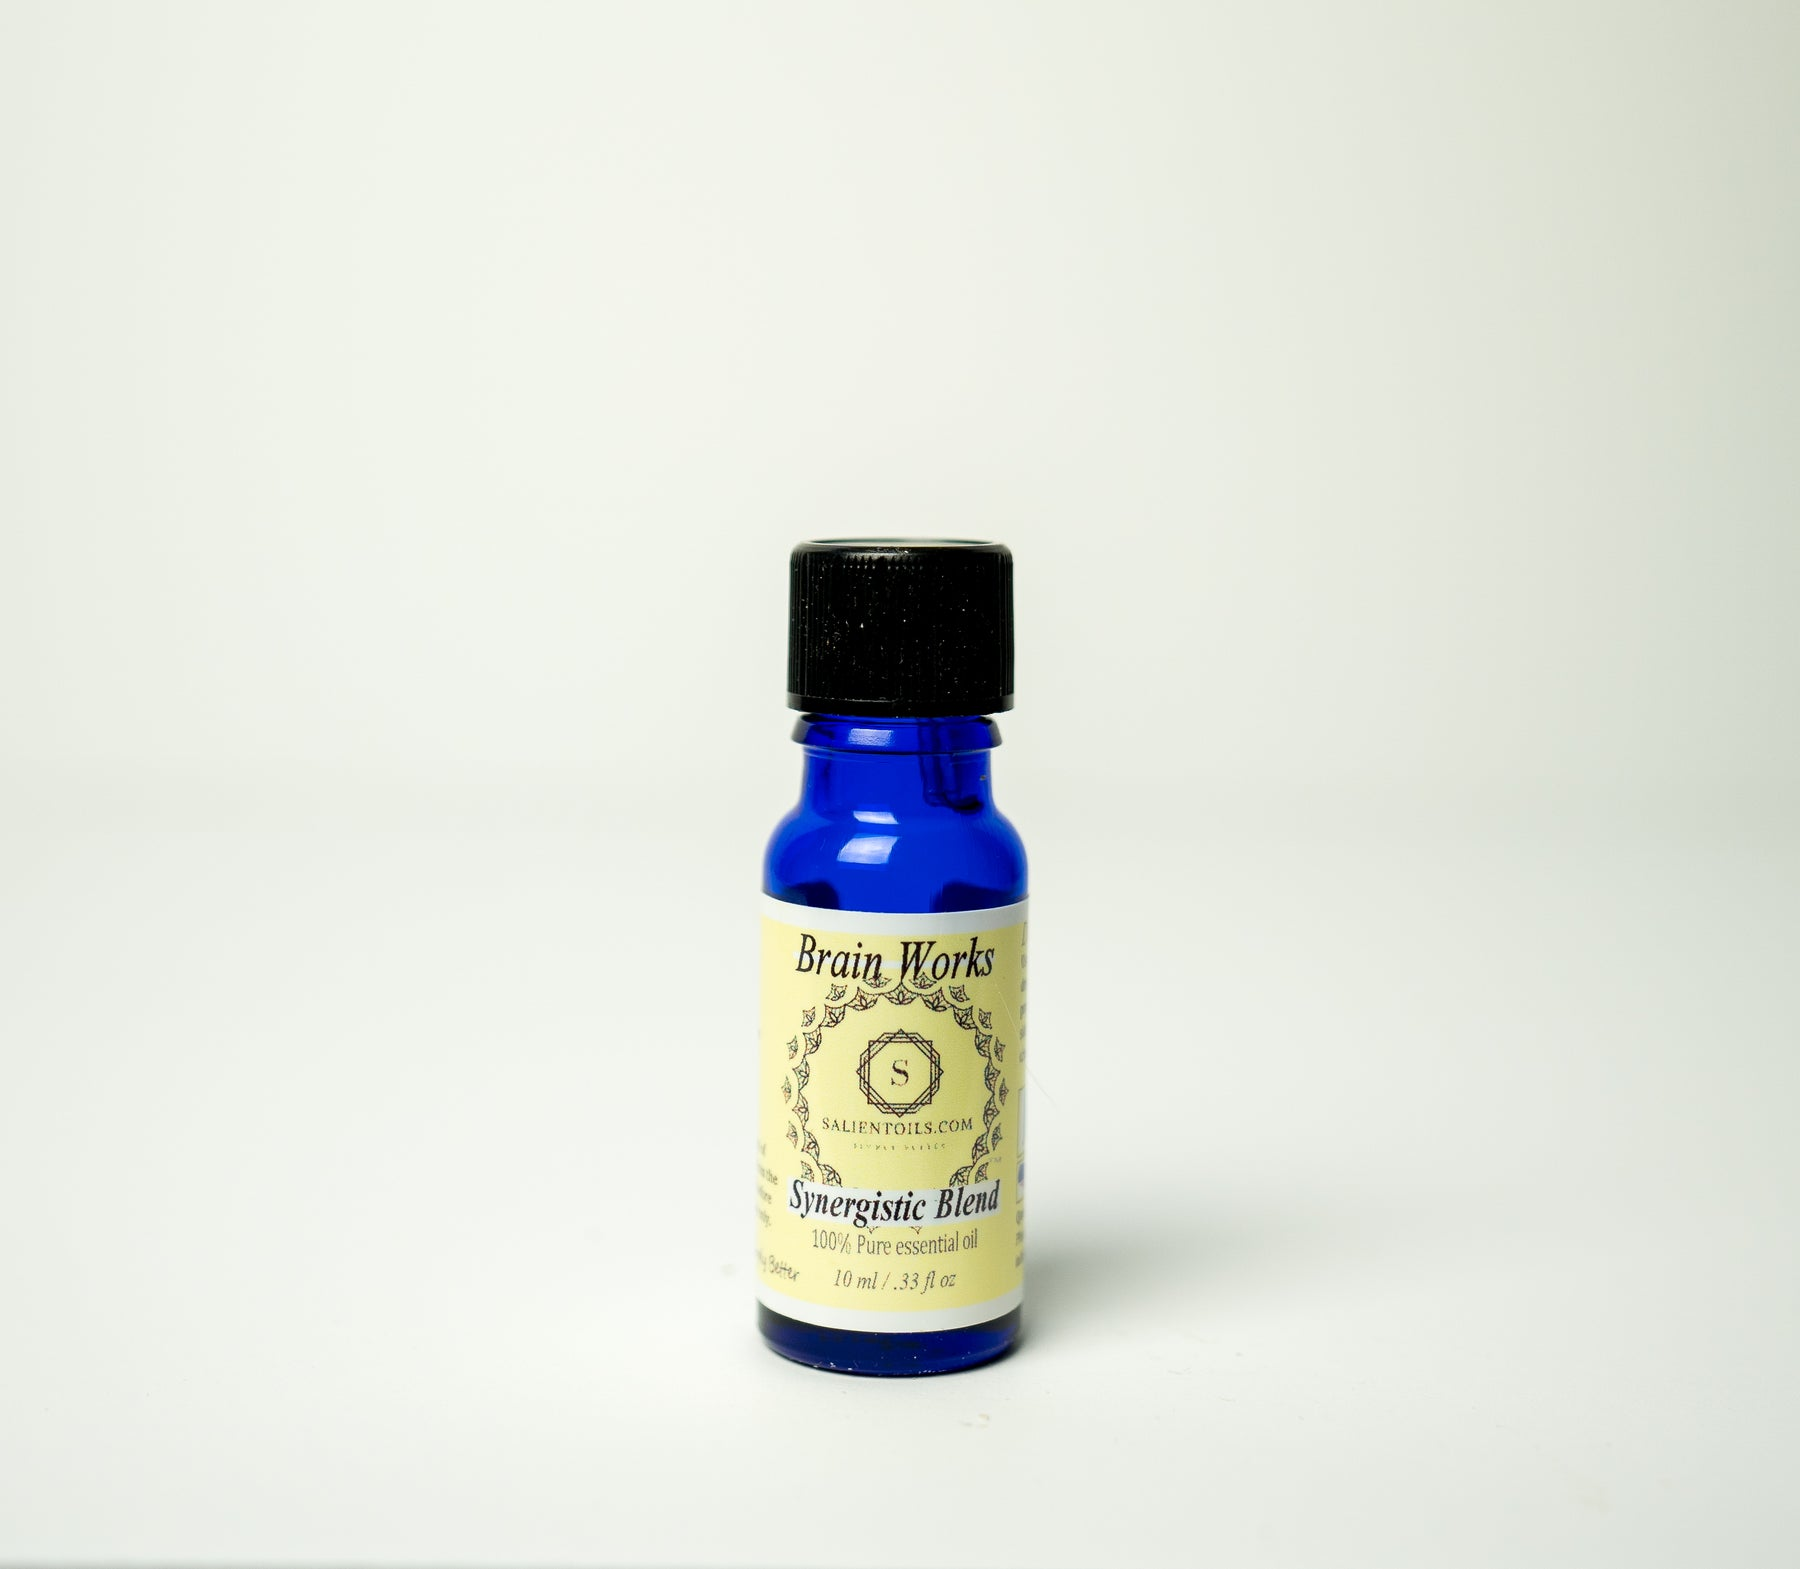 Brain Works Blended Essential Oil 10ml